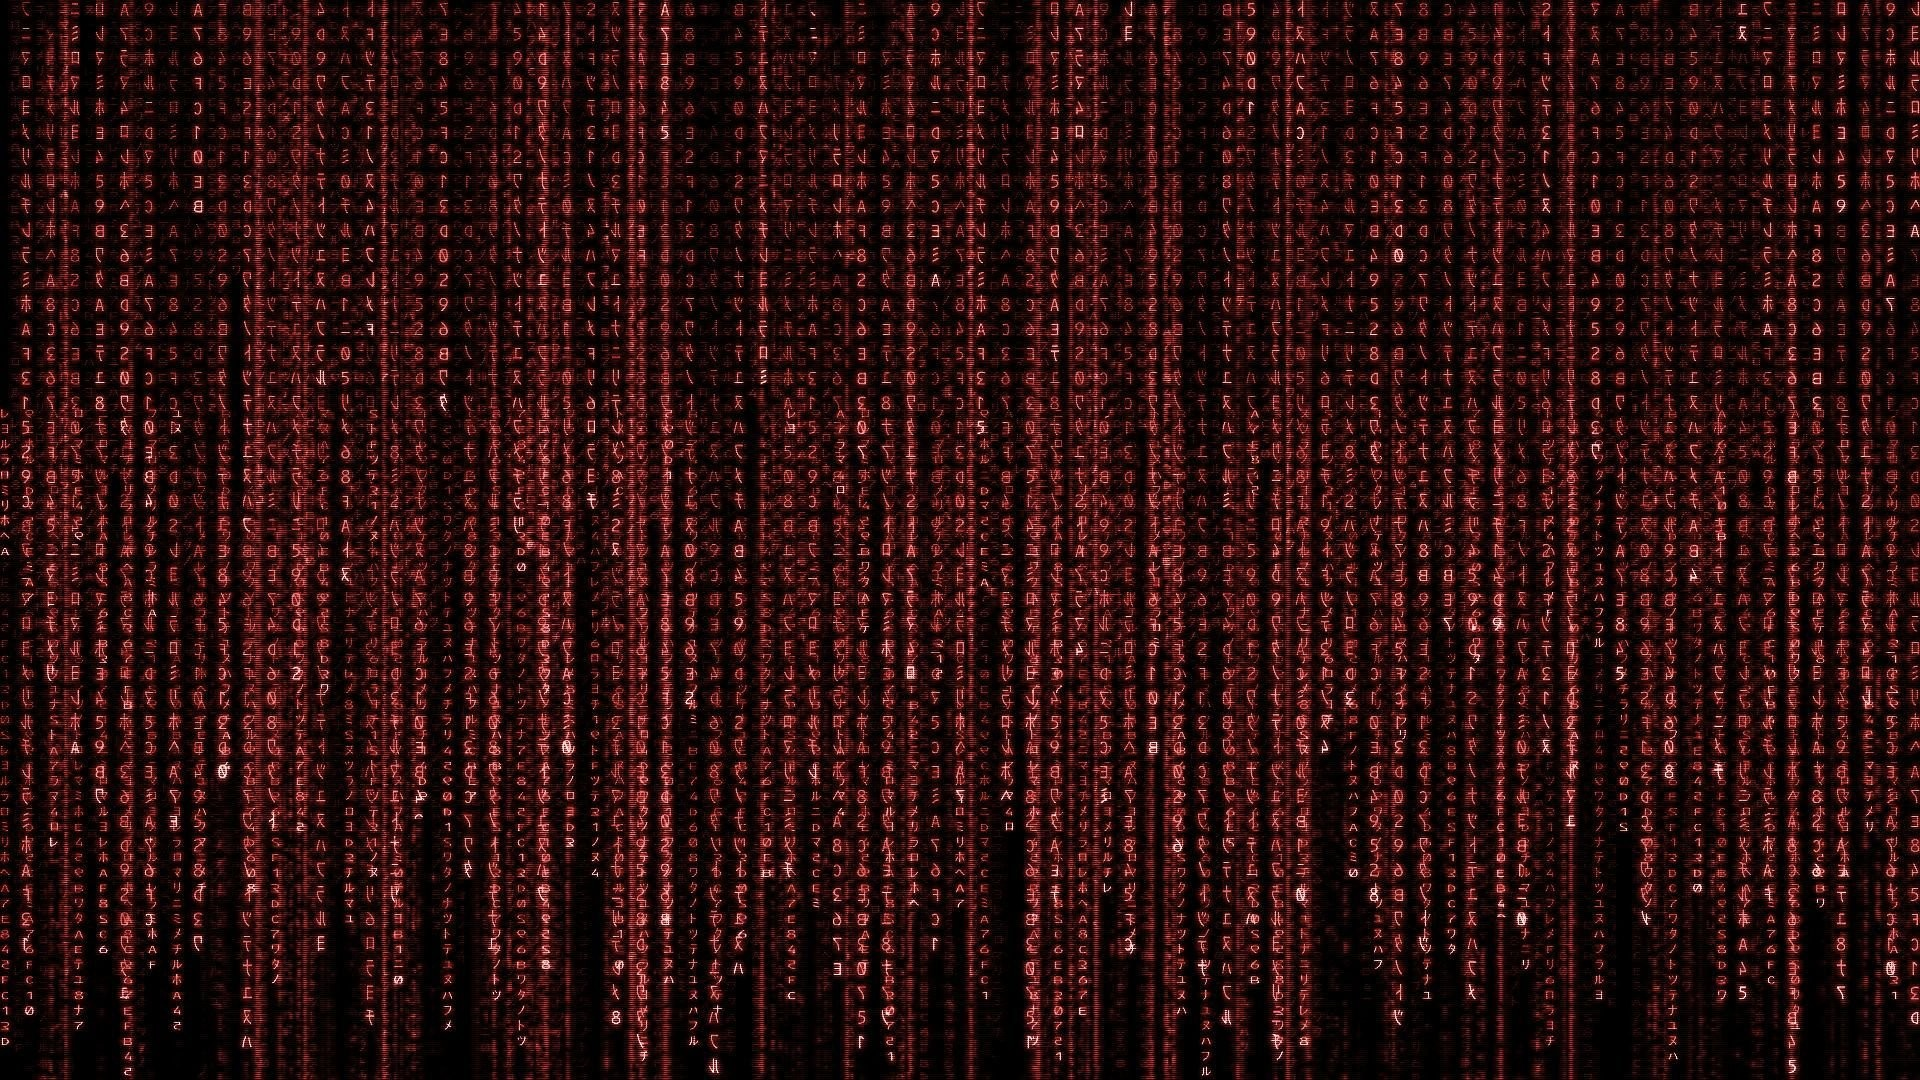 Animated Matrix Wallpaper Windows 10 WallpaperSafari